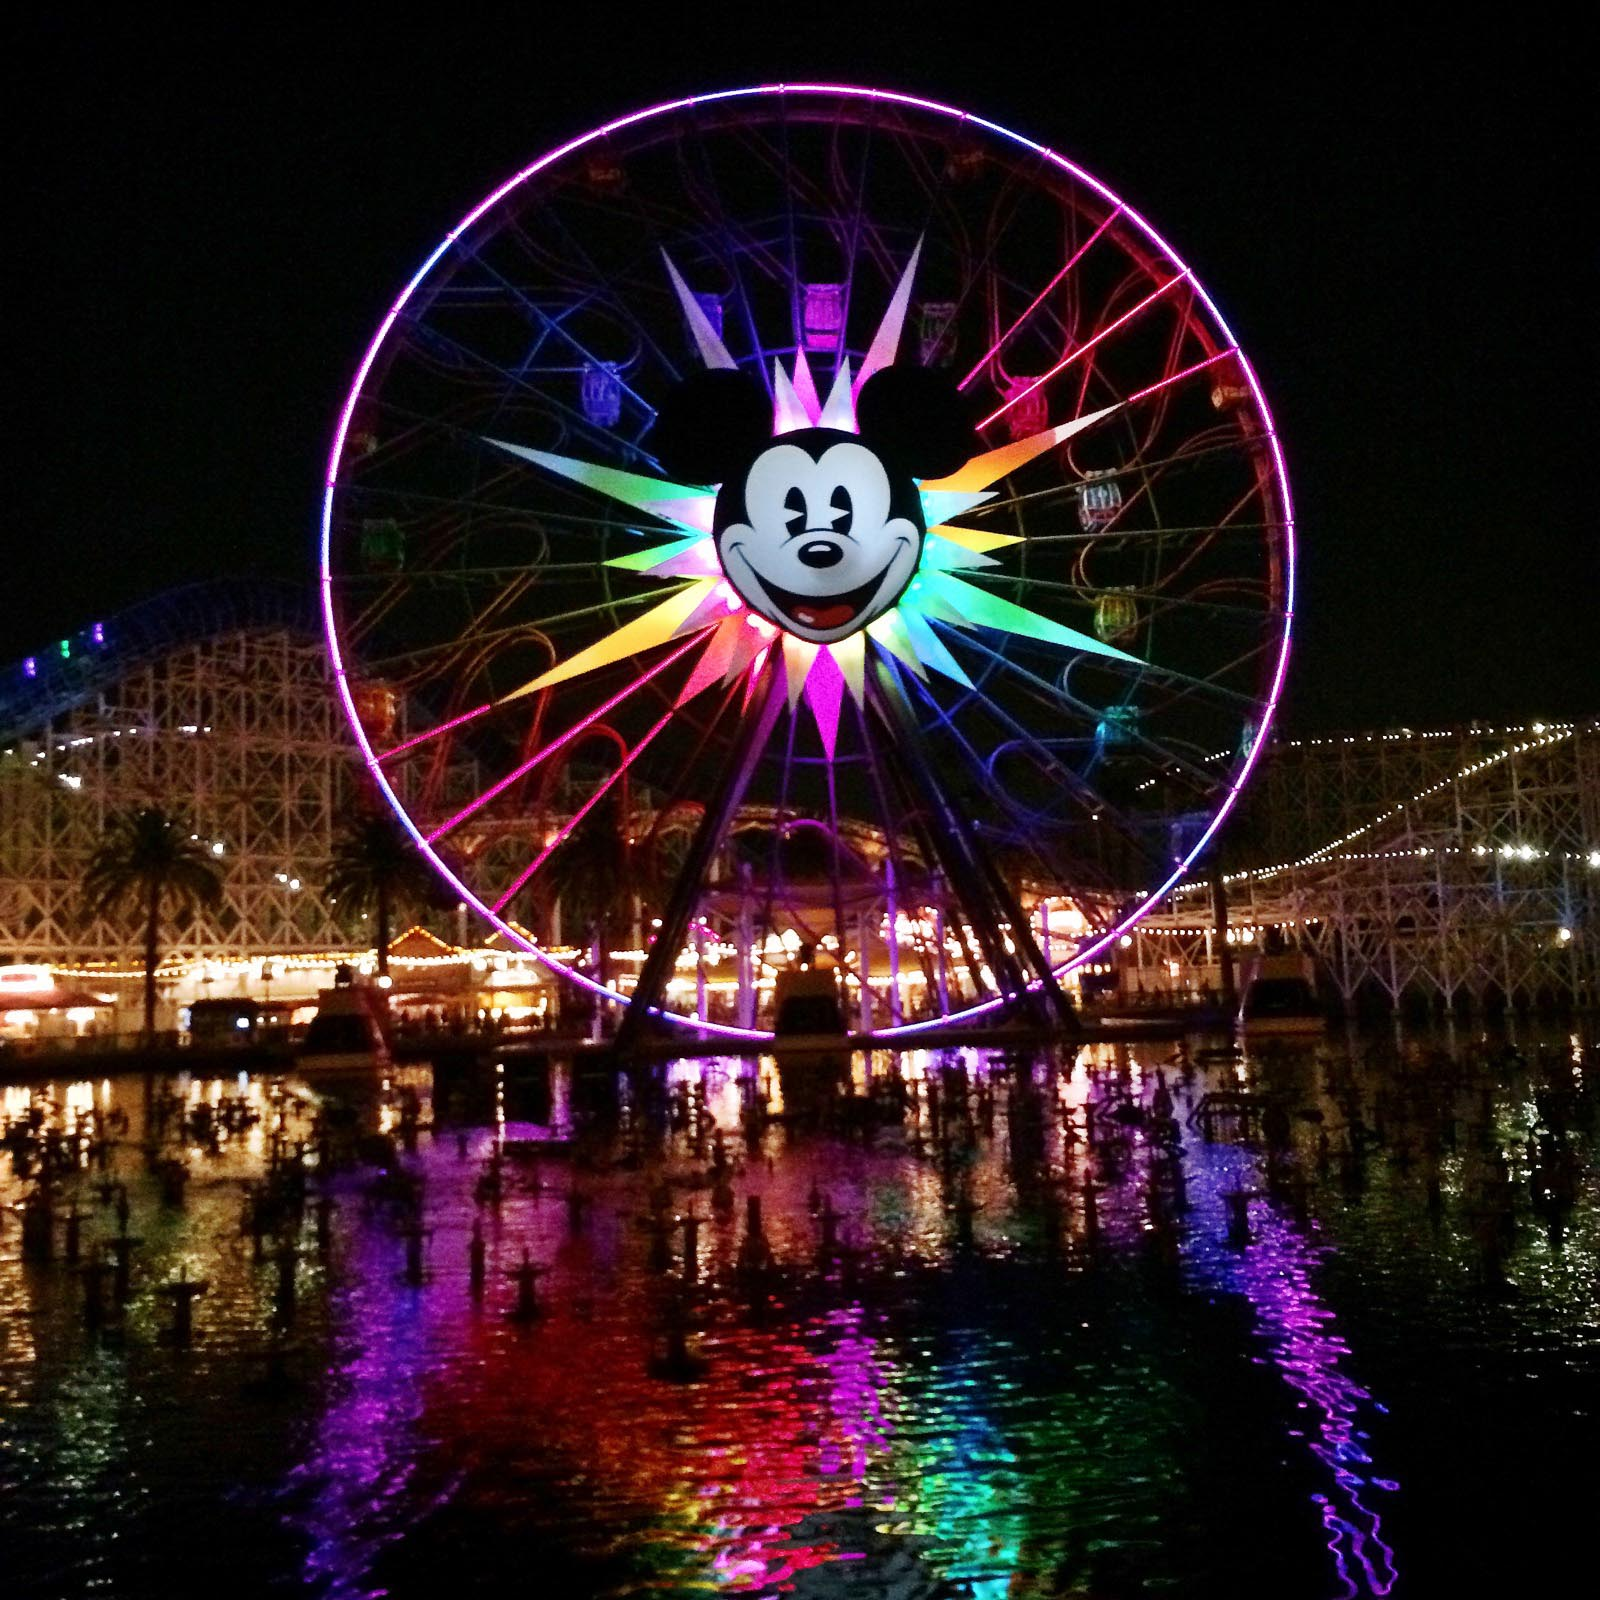 Disneyland's California Adventure Mickeys Fun Wheel at Nightime